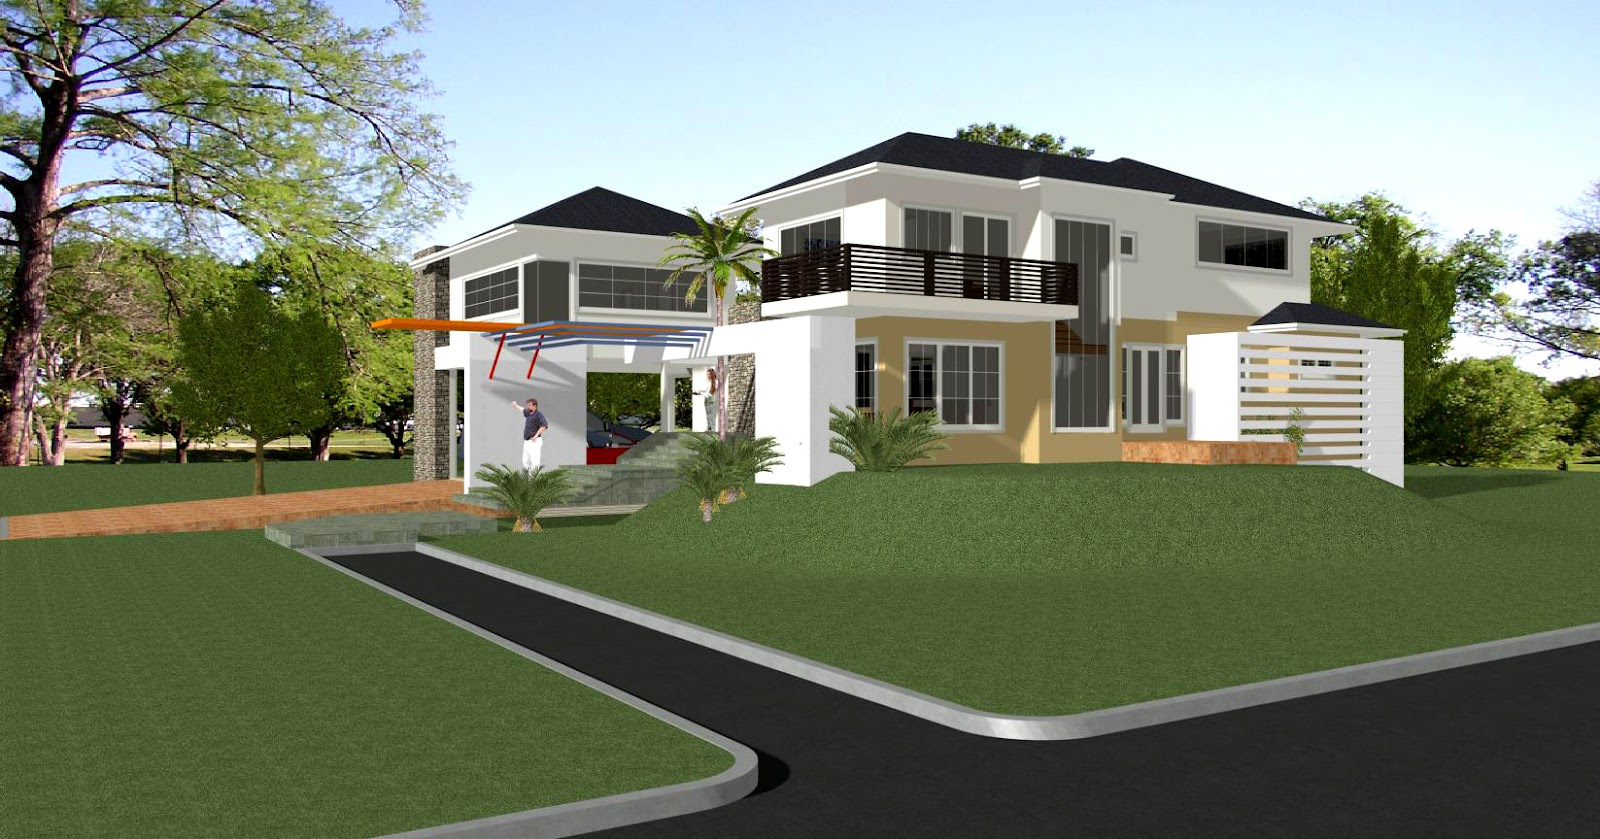 Dream home designs erecre group realty design and for Design dream home online